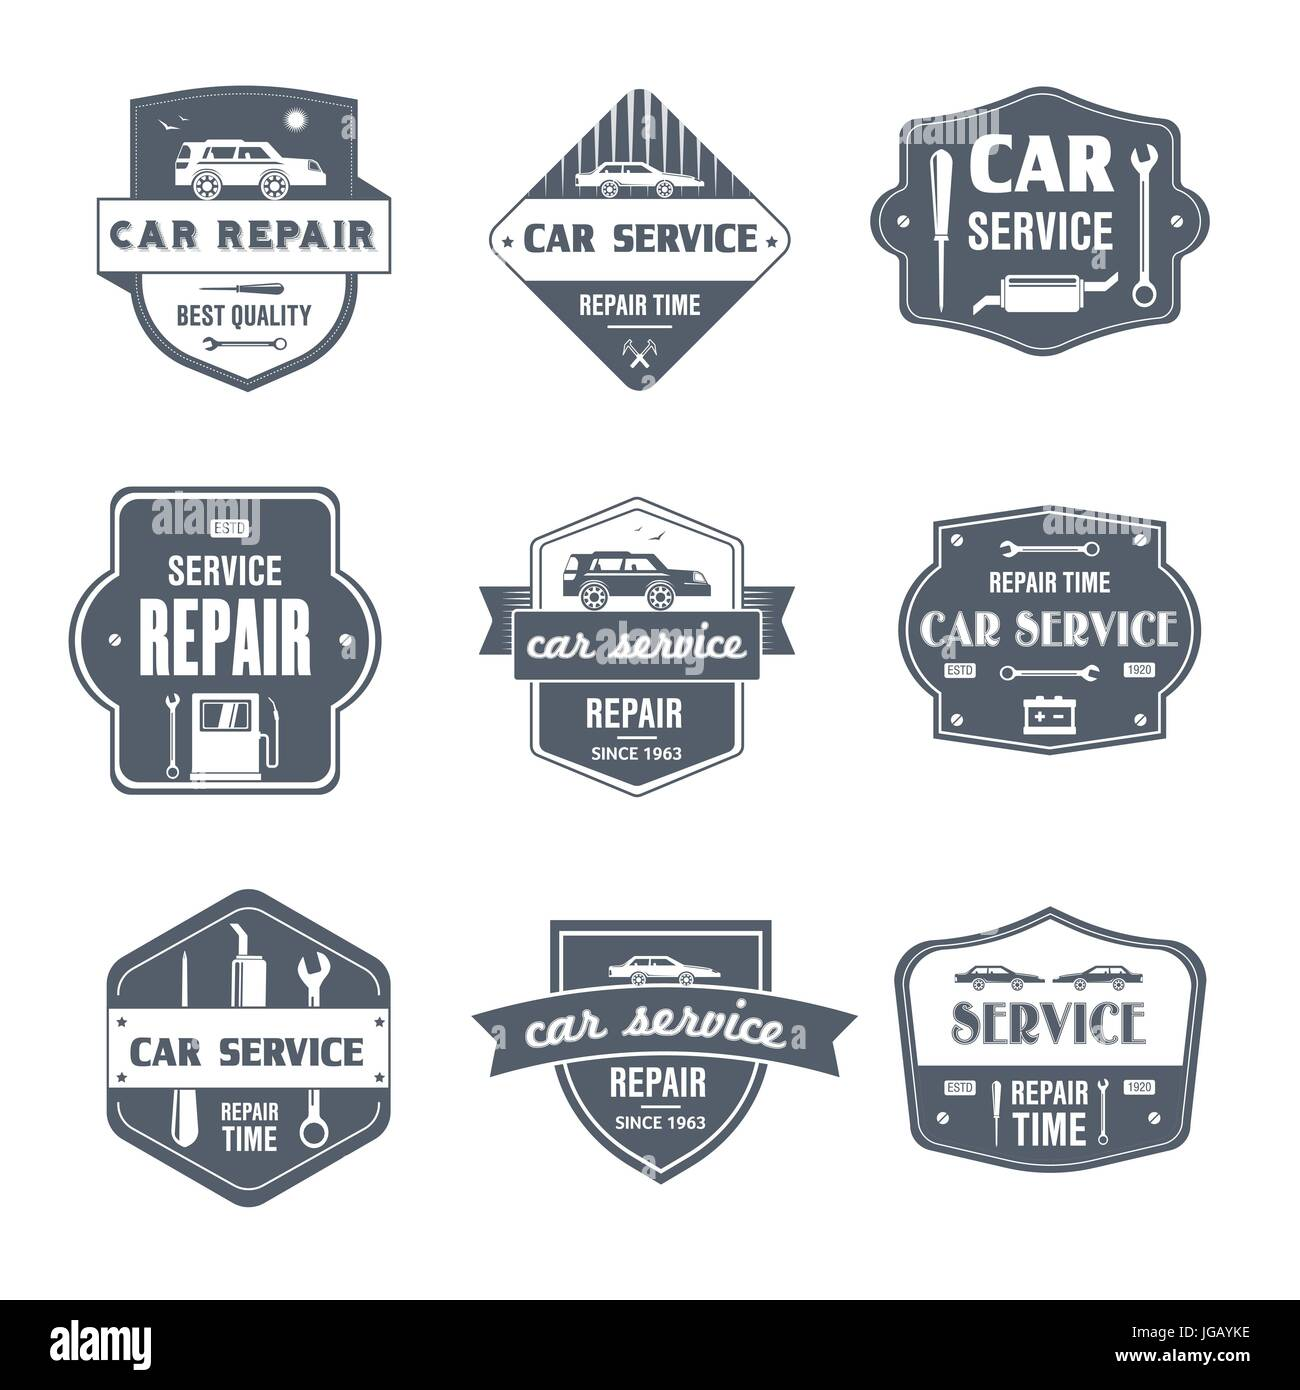 Car Repair - vector set of vintage template logo insignias  Old